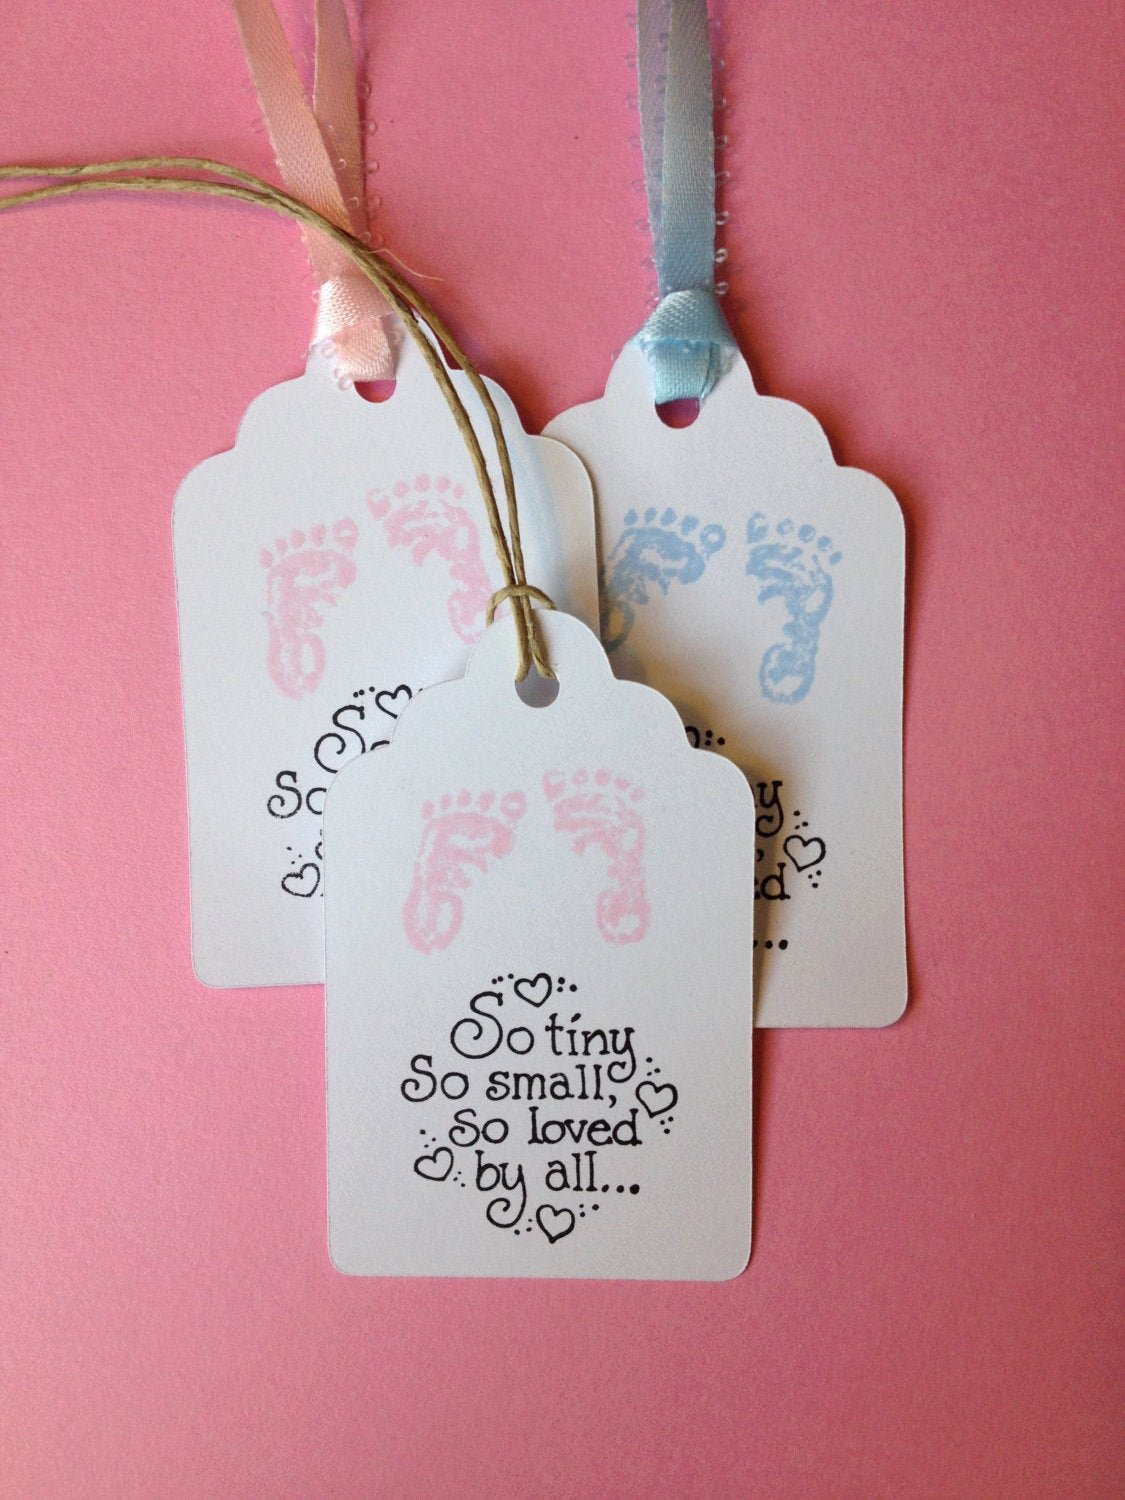 Baby Shower Gift Tags Luxury Baby Shower Tags Gift Tags Set Of 36 Baby by Moomoohandmadecards